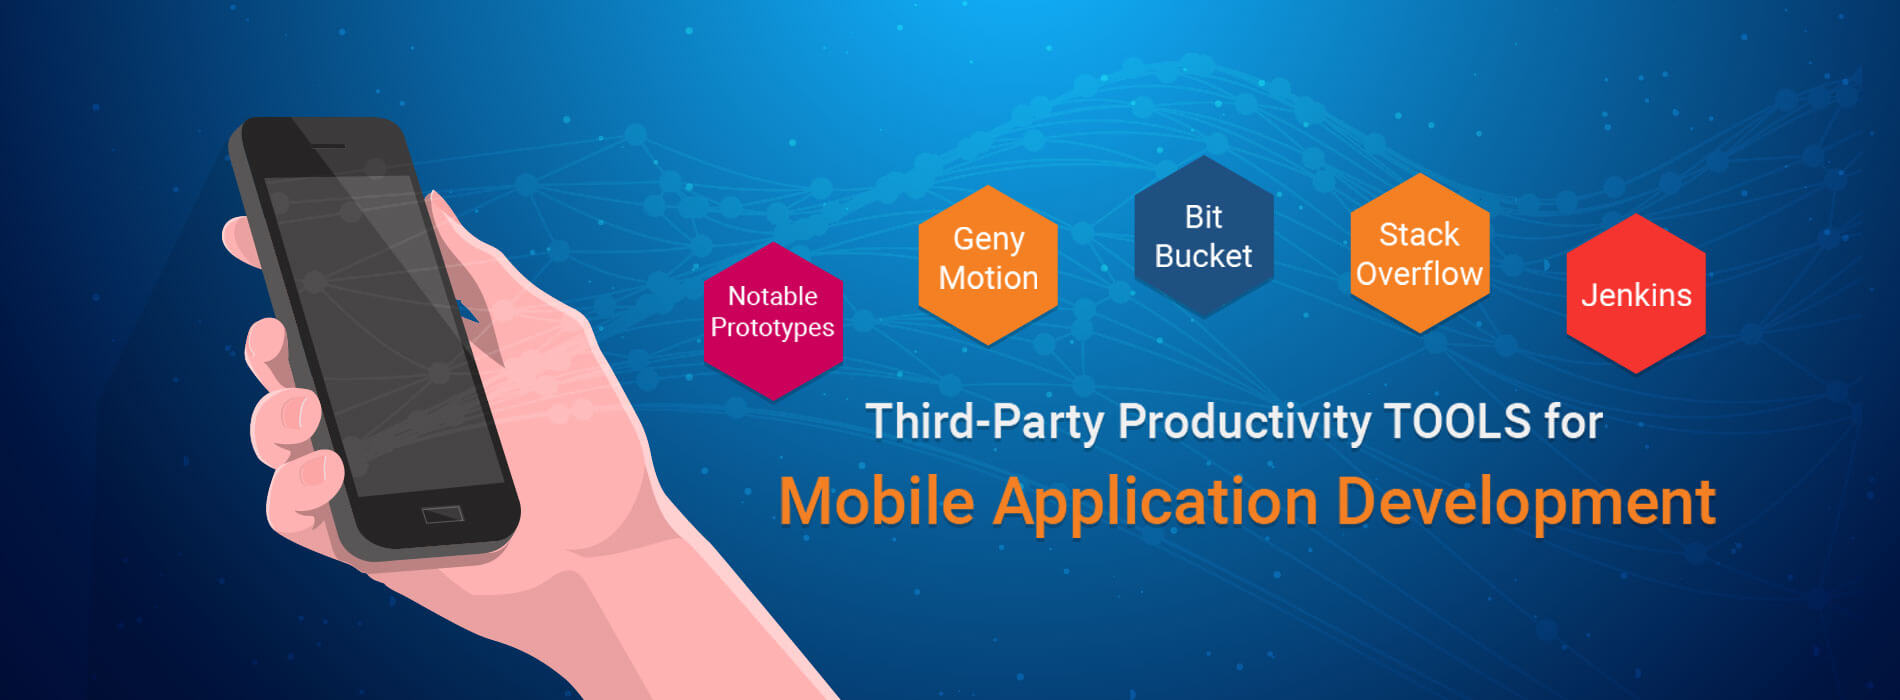 Third-Party Productivity Tools For Mobile Application Developers